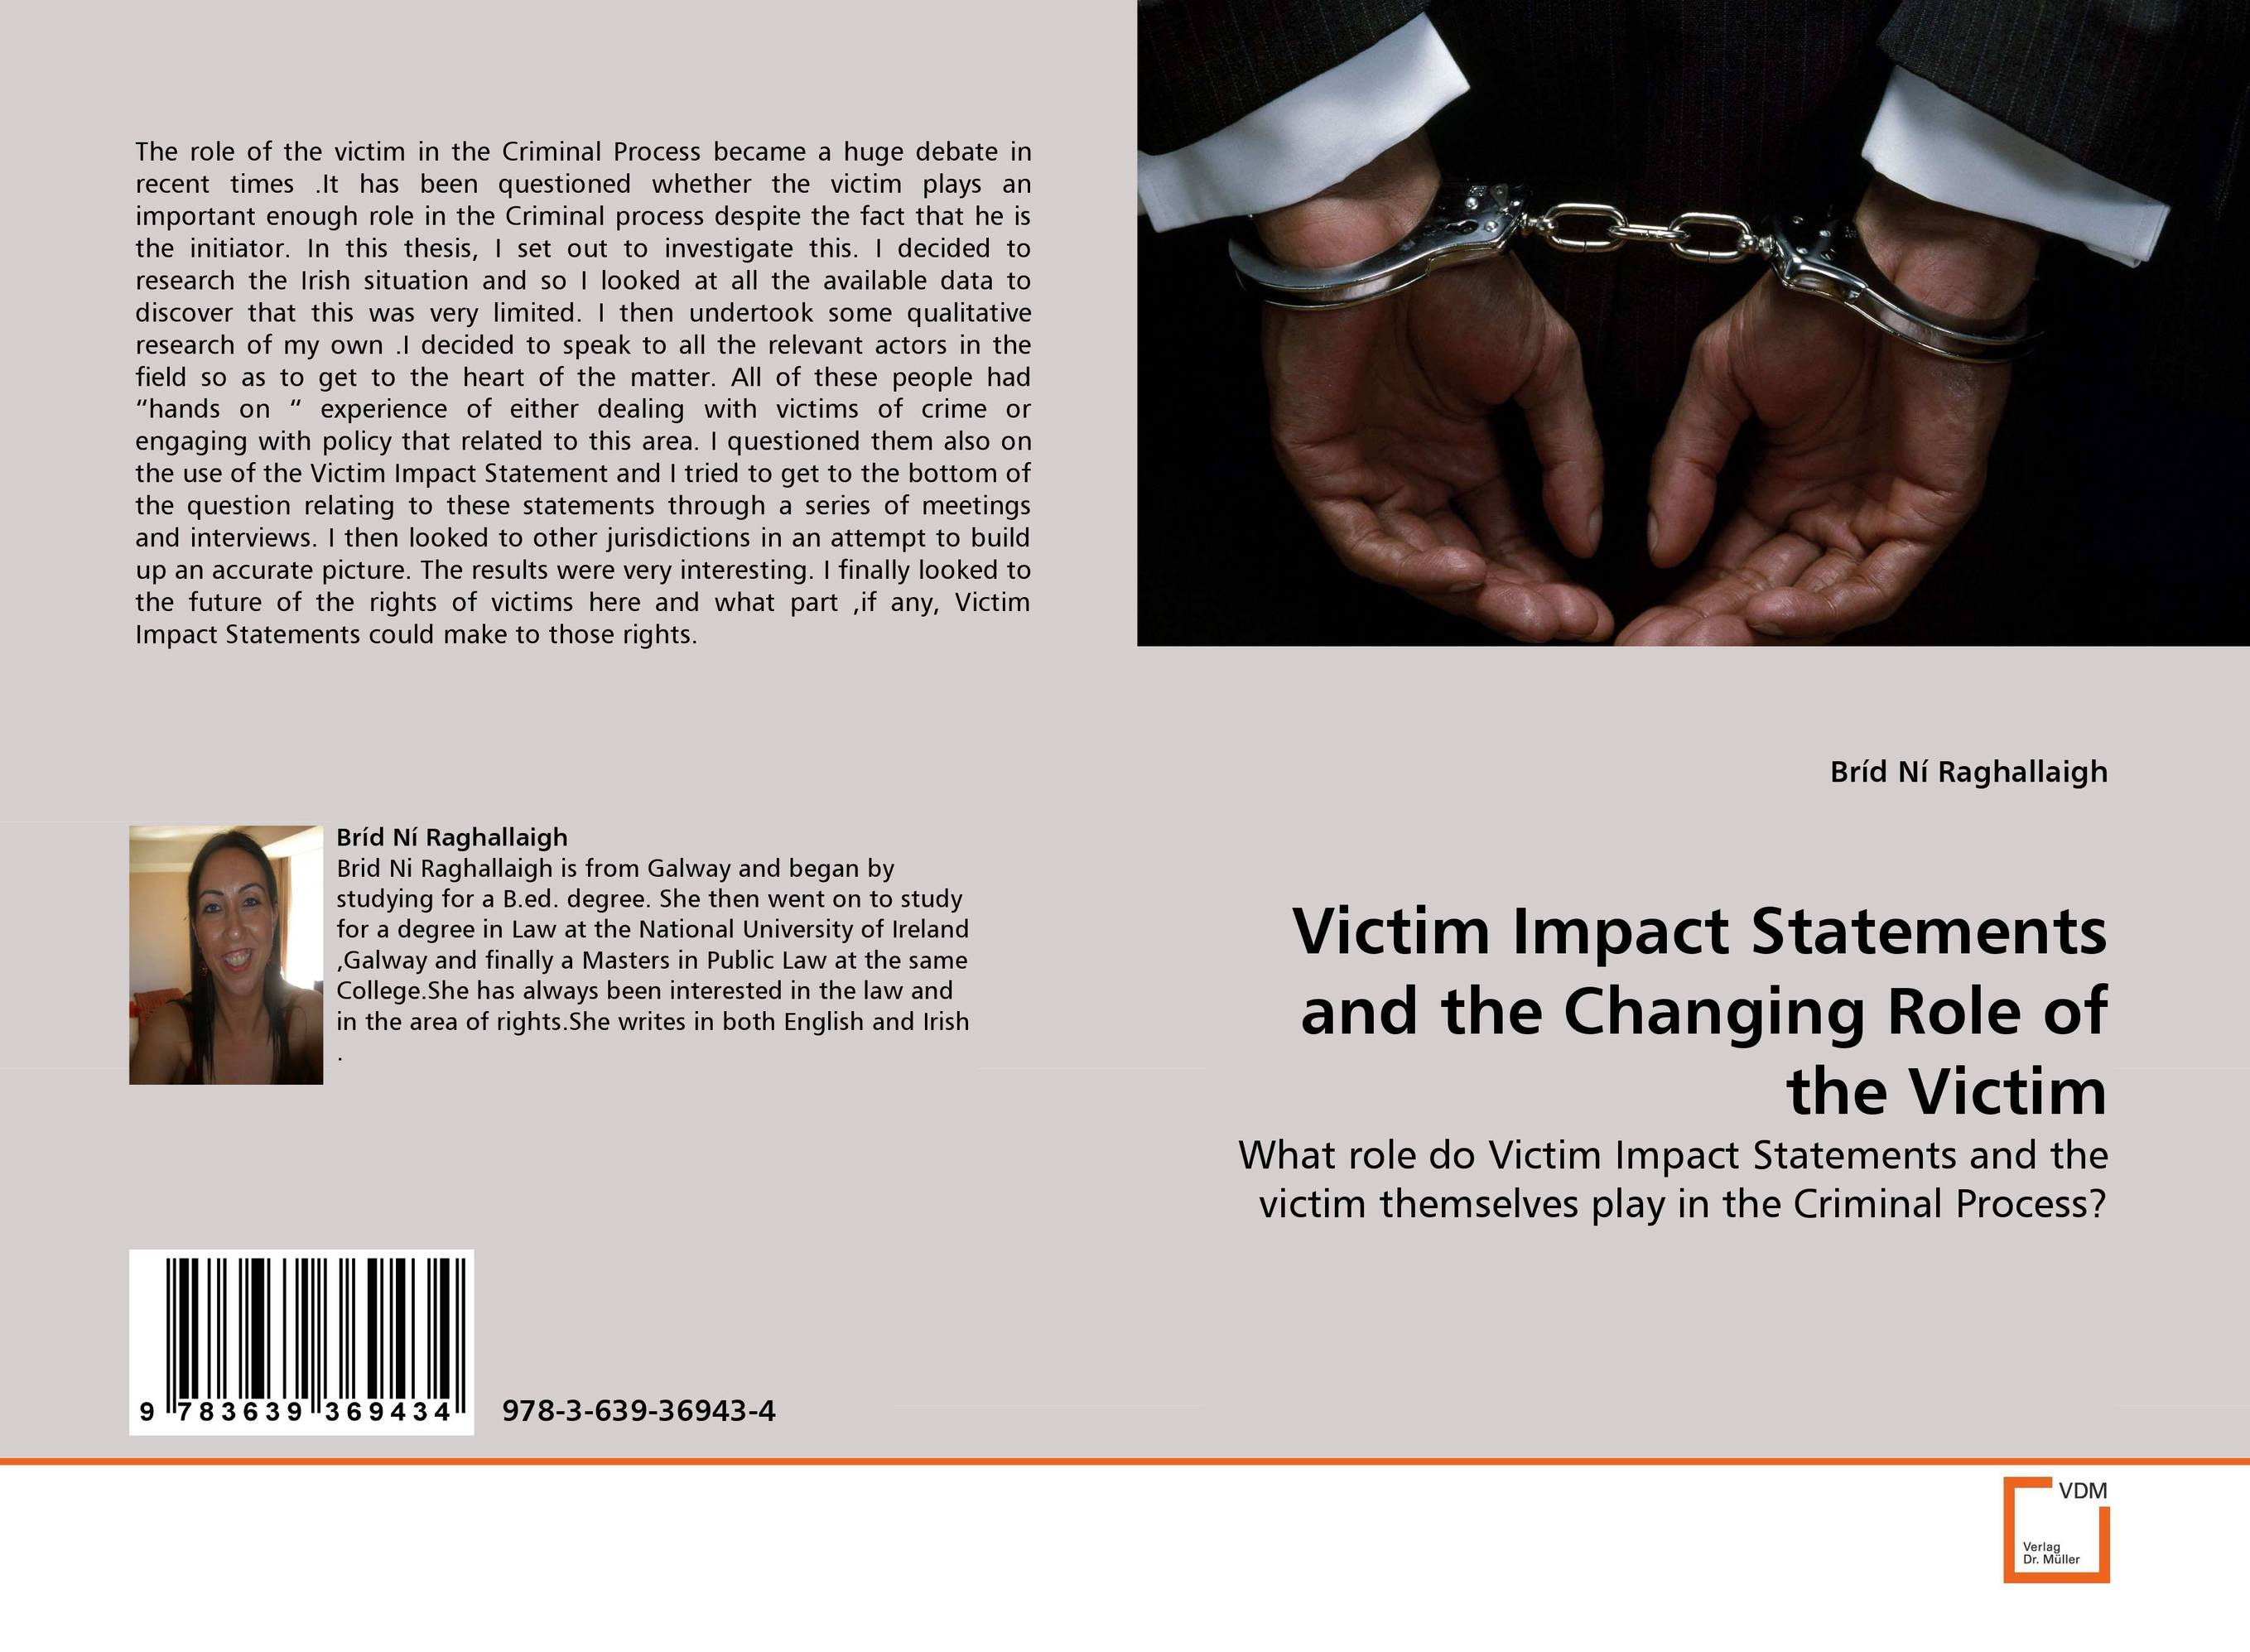 Victim Impact Statements and the Changing Role of the Victim